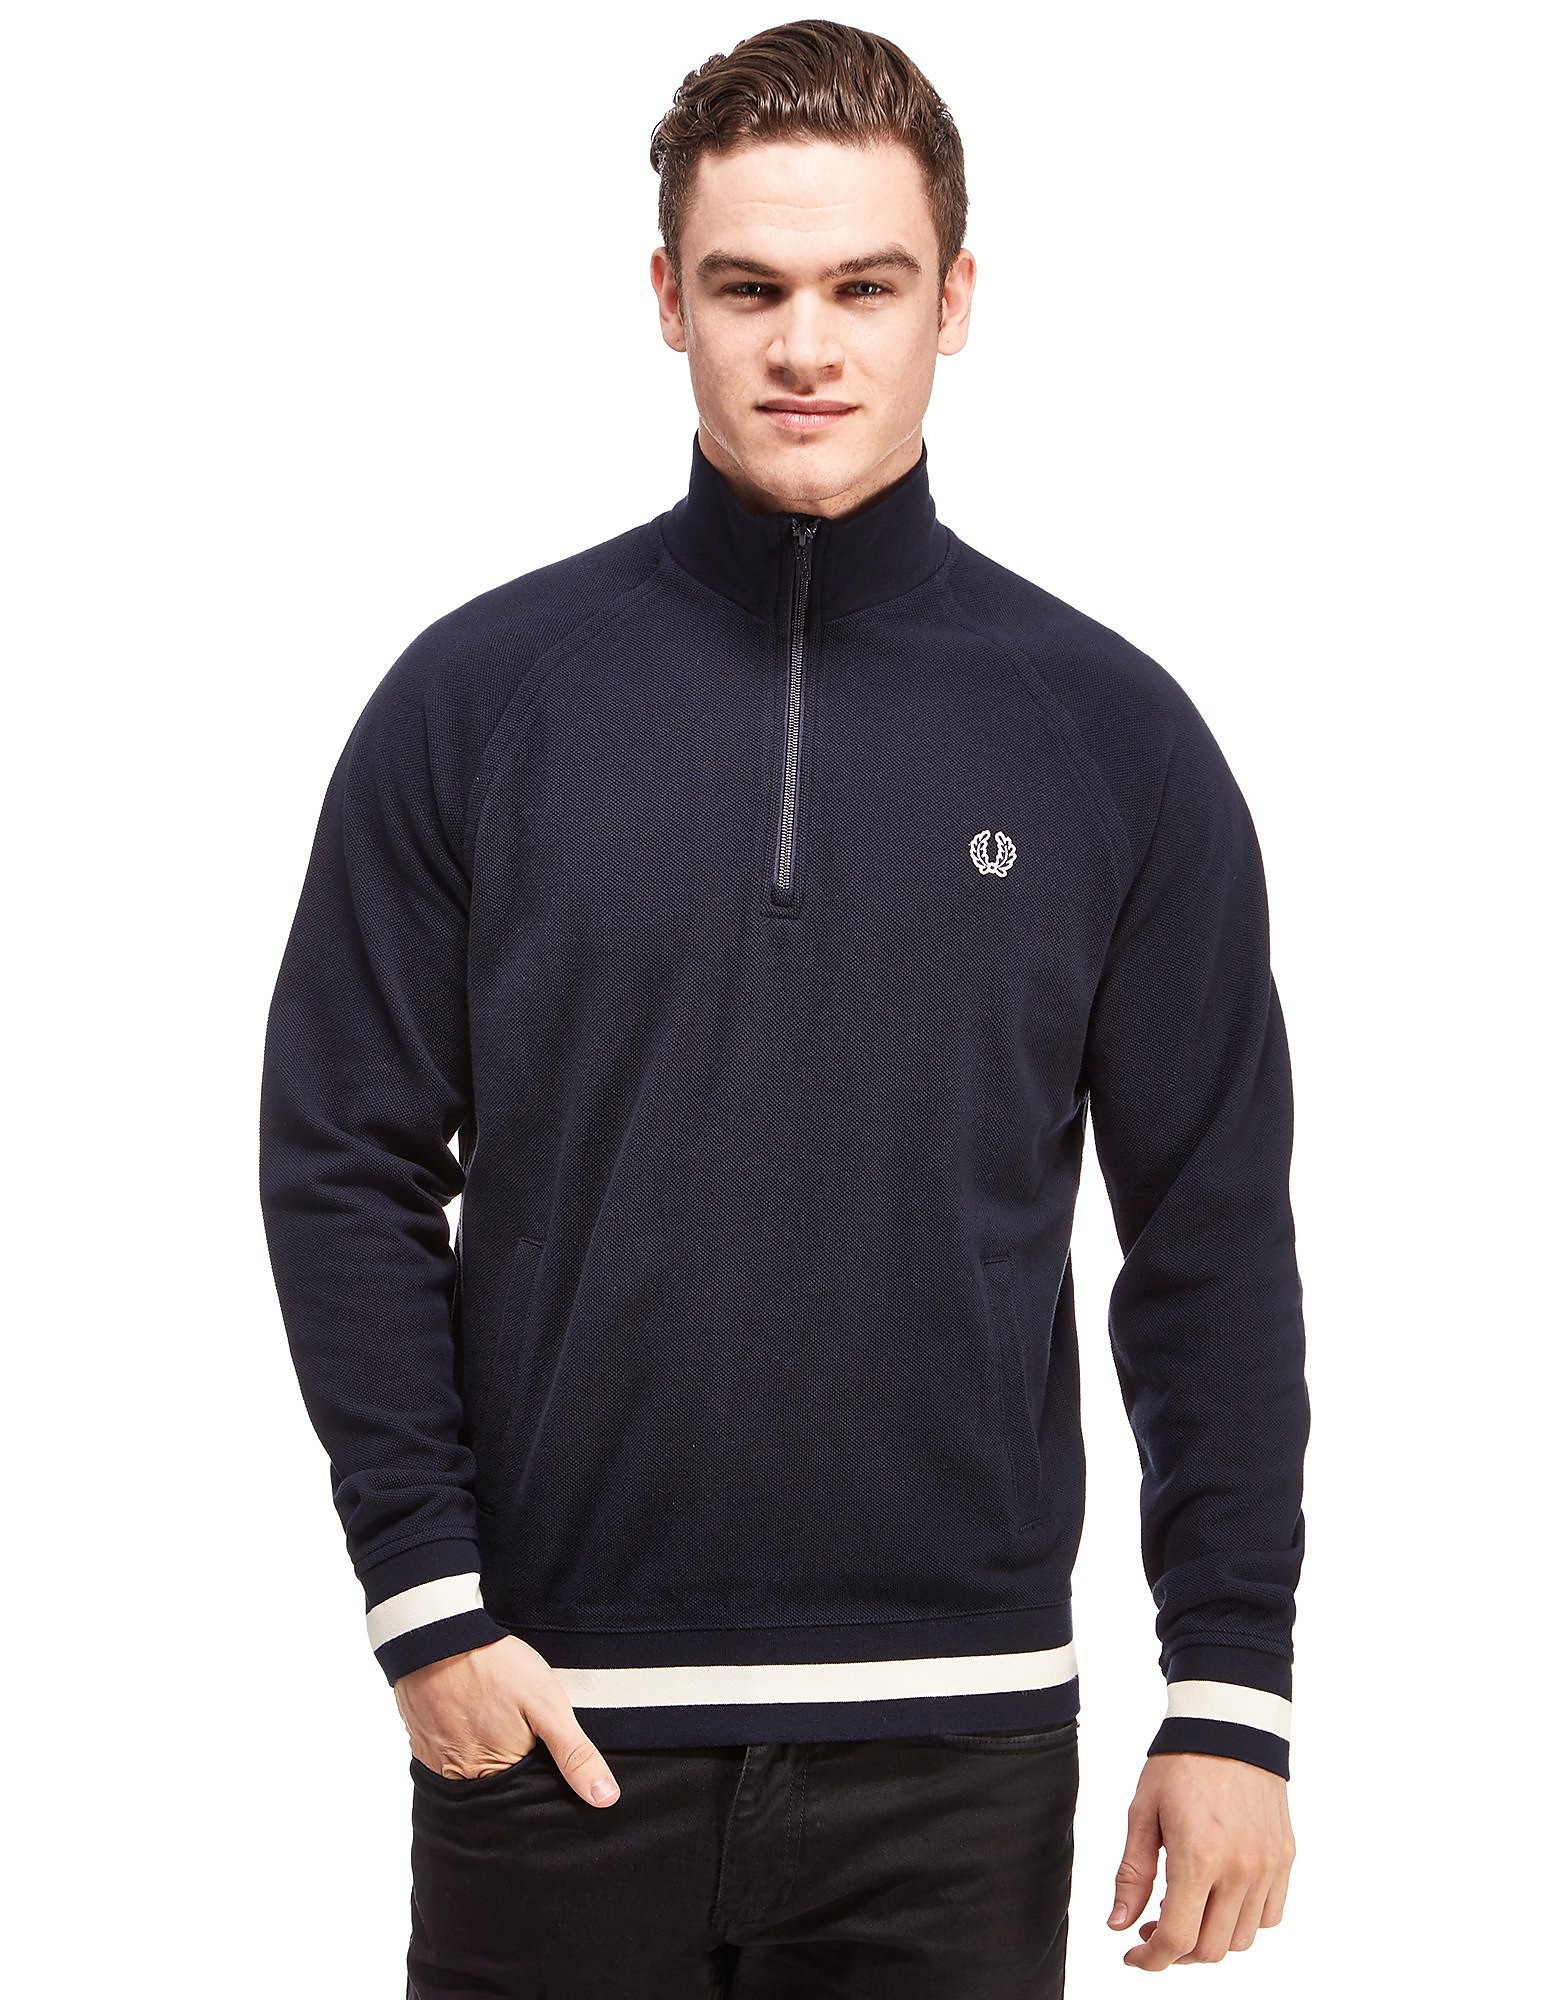 Fred Perry SA Pique 1/4 Zipped Sweatshirt